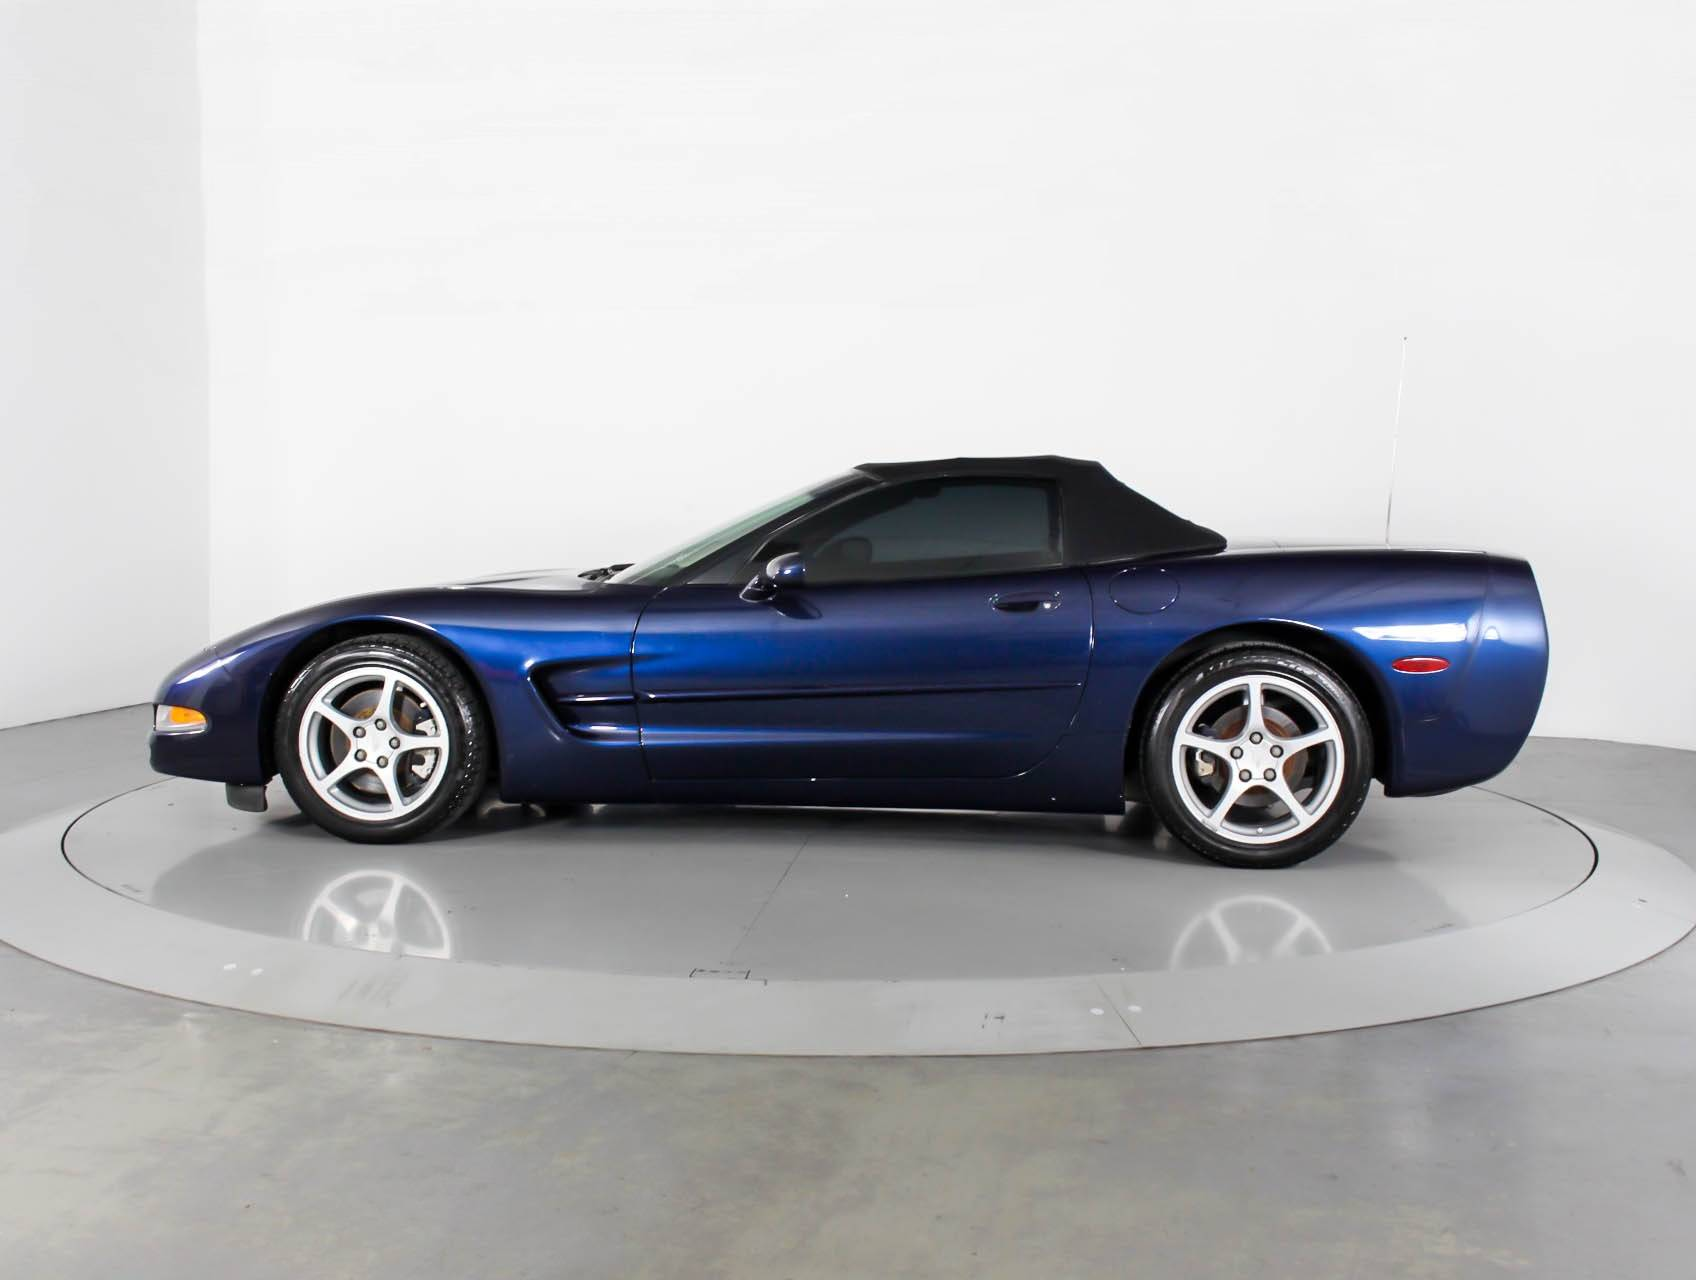 Used 2000 Chevrolet Corvette Convertible Convertible For